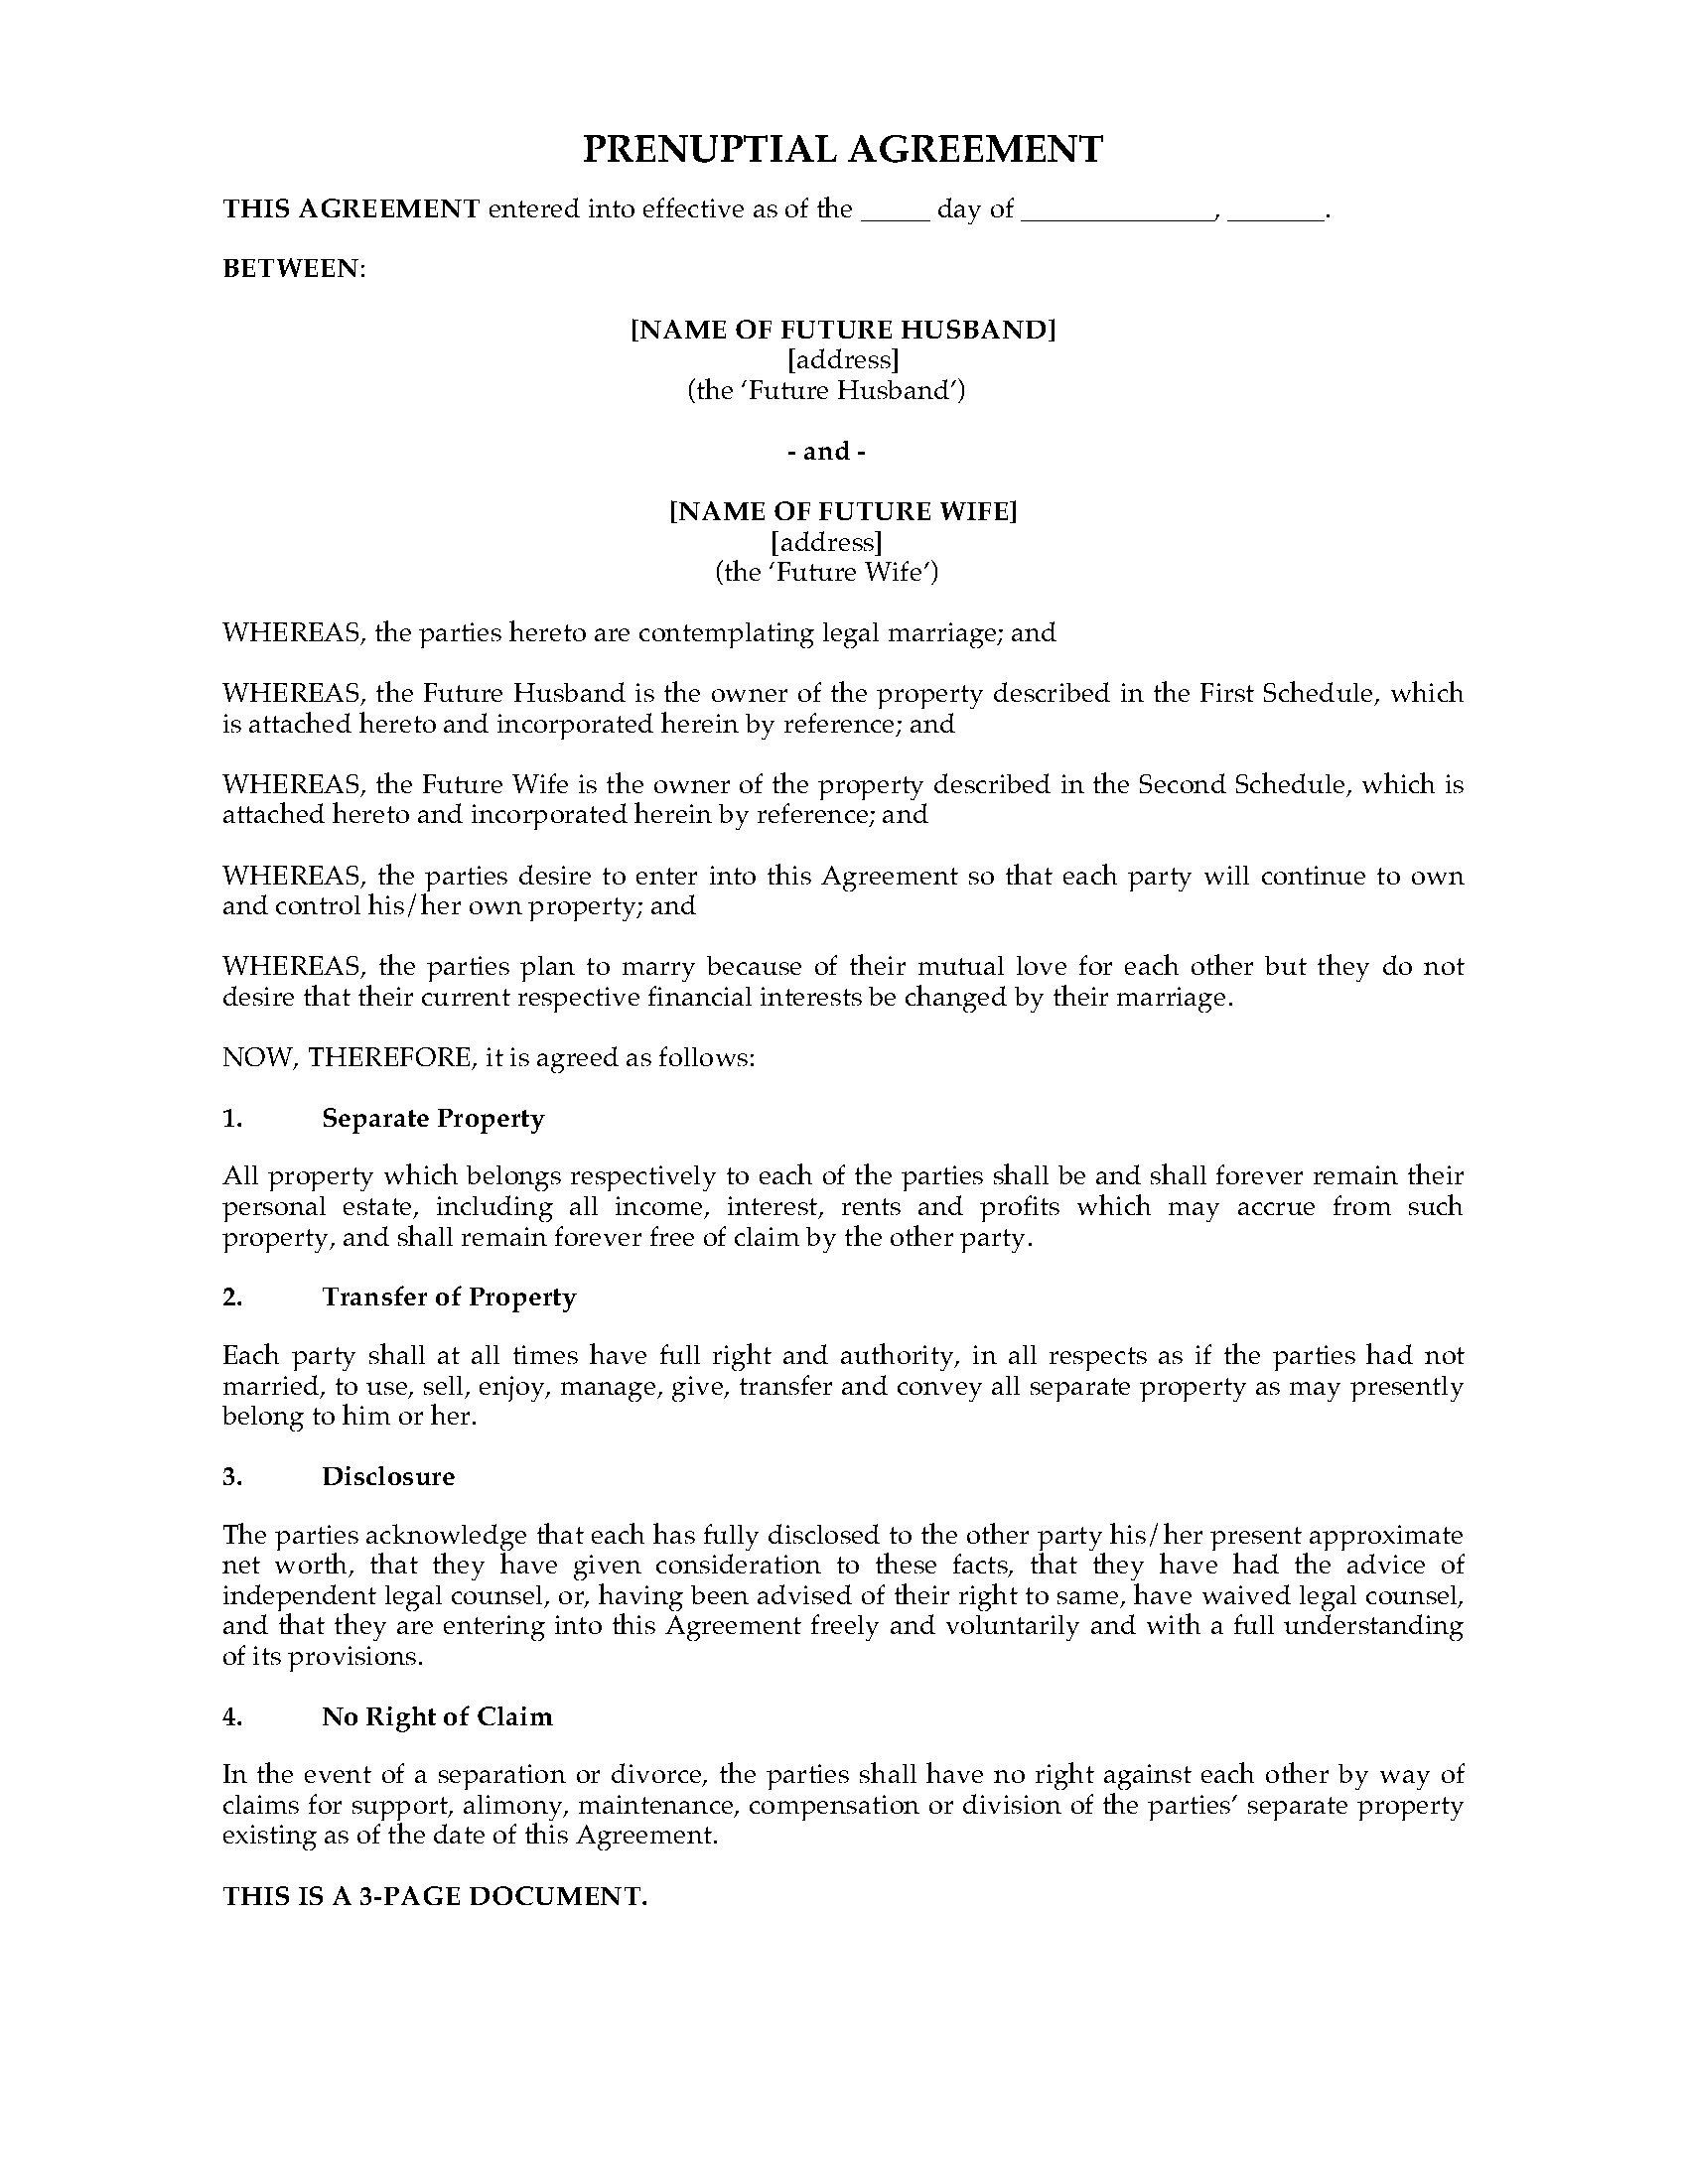 Uk Prenuptial Agreement  Legal Forms And Business Templates With Regard To New York Prenuptial Agreement Template